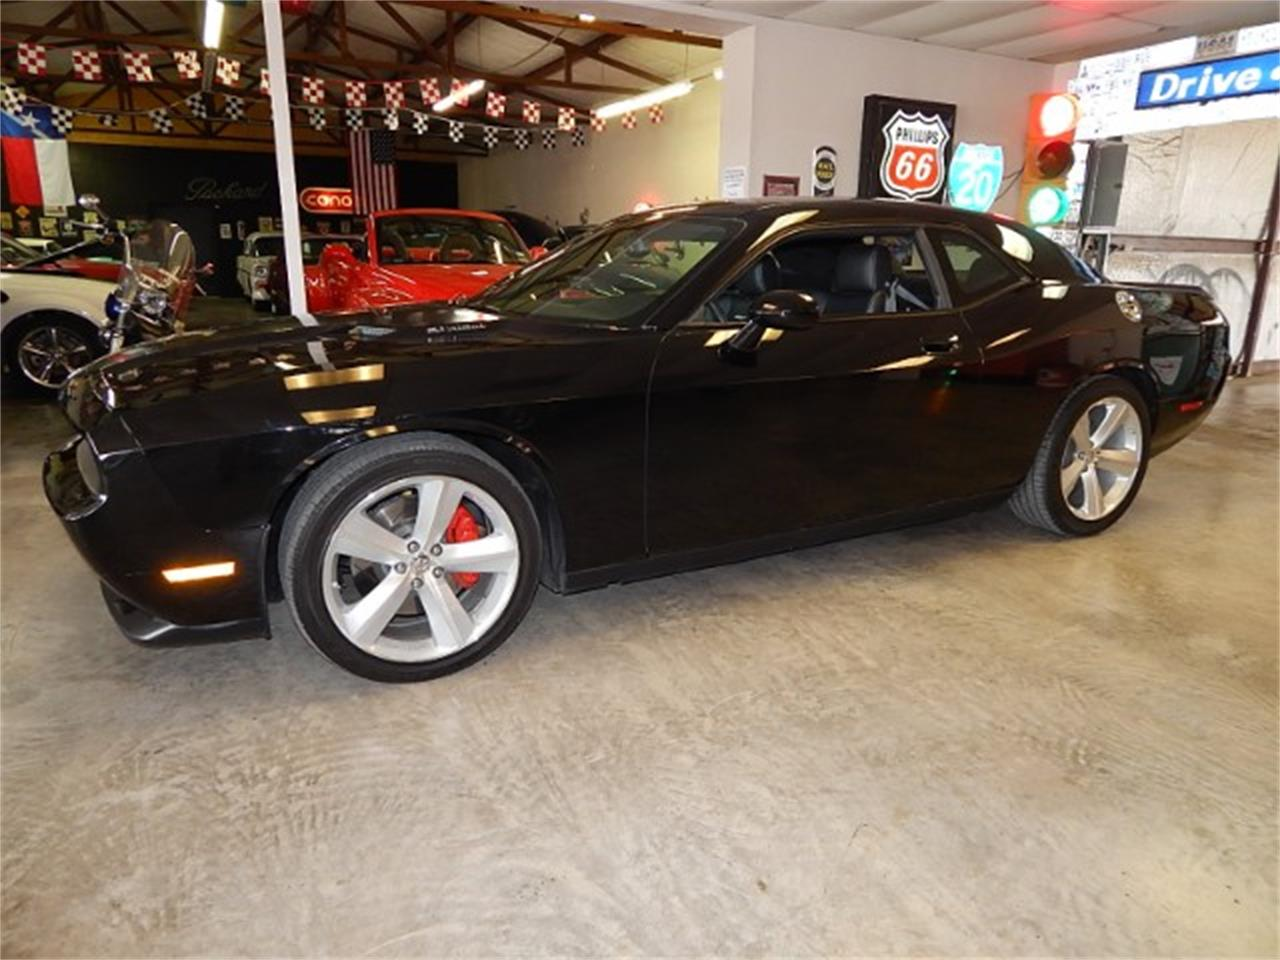 2008 Dodge Challenger for sale in Wichita Falls, TX – photo 14